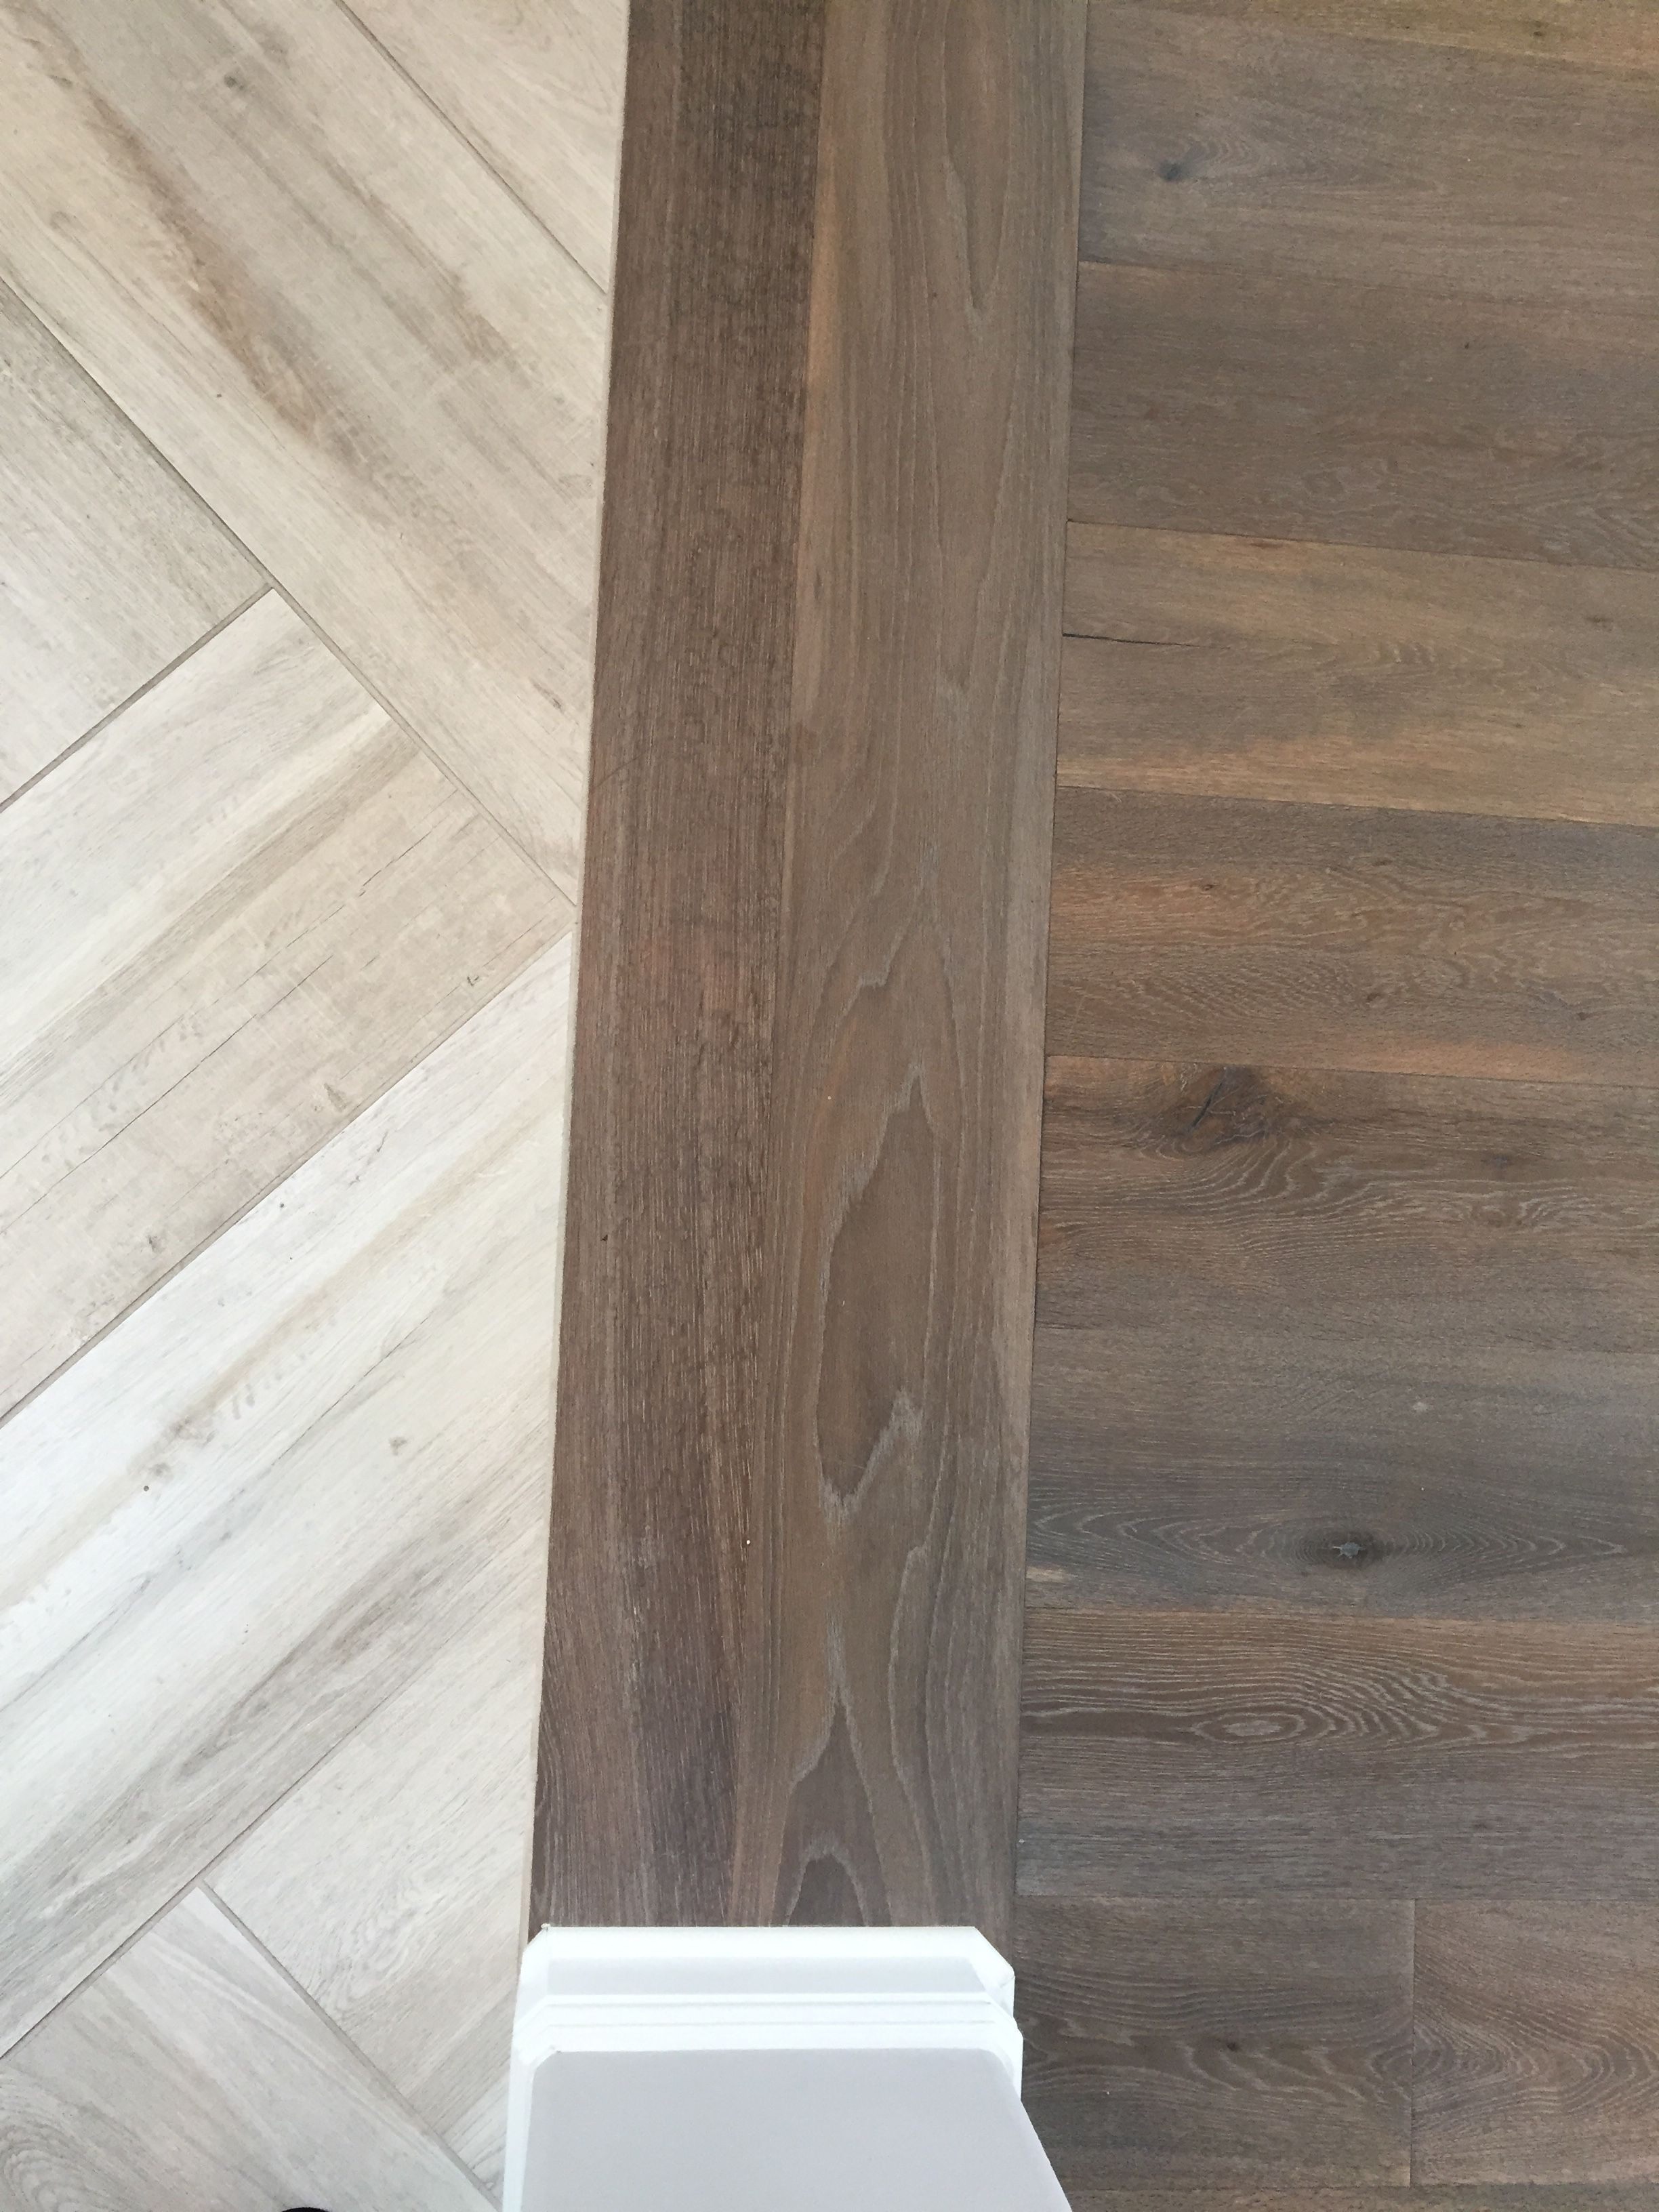 how much cost to install hardwood floor of floor transition laminate to herringbone tile pattern model regarding floor transition laminate to herringbone tile pattern herringbone tile pattern herringbone wood floor